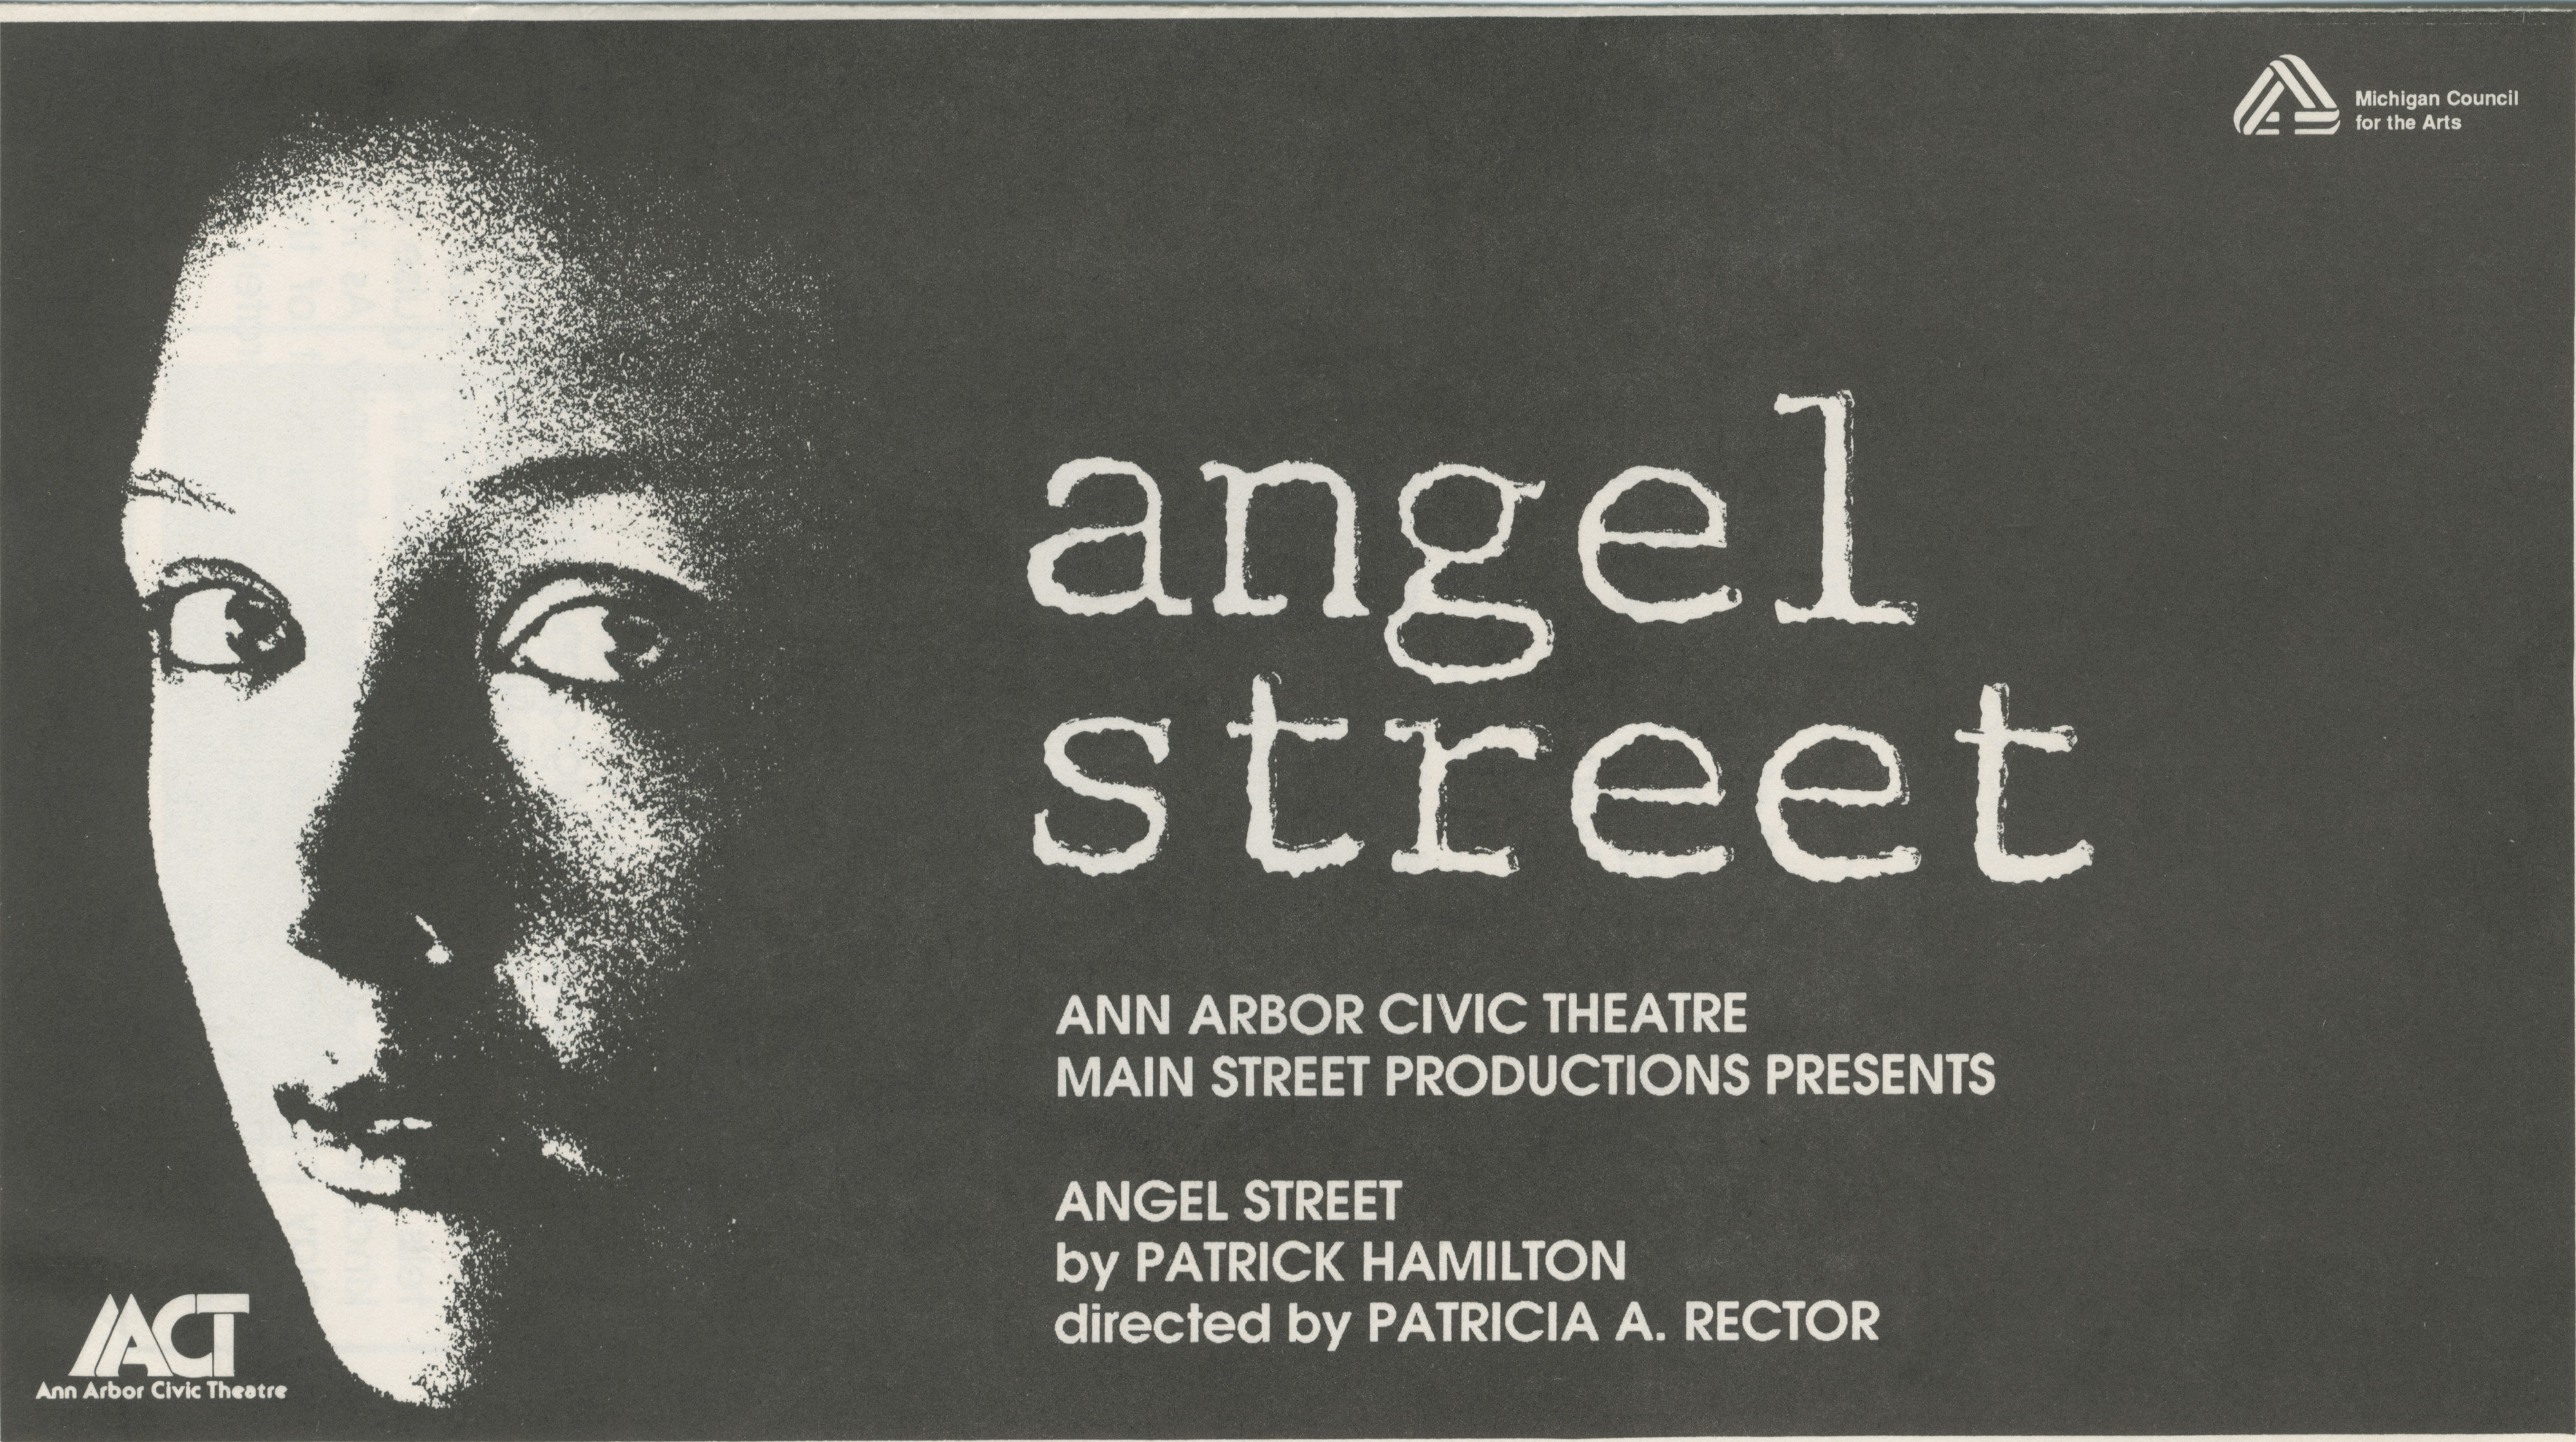 Ann Arbor Civic Theatre Program: Angel Street, September 24, 1987 image